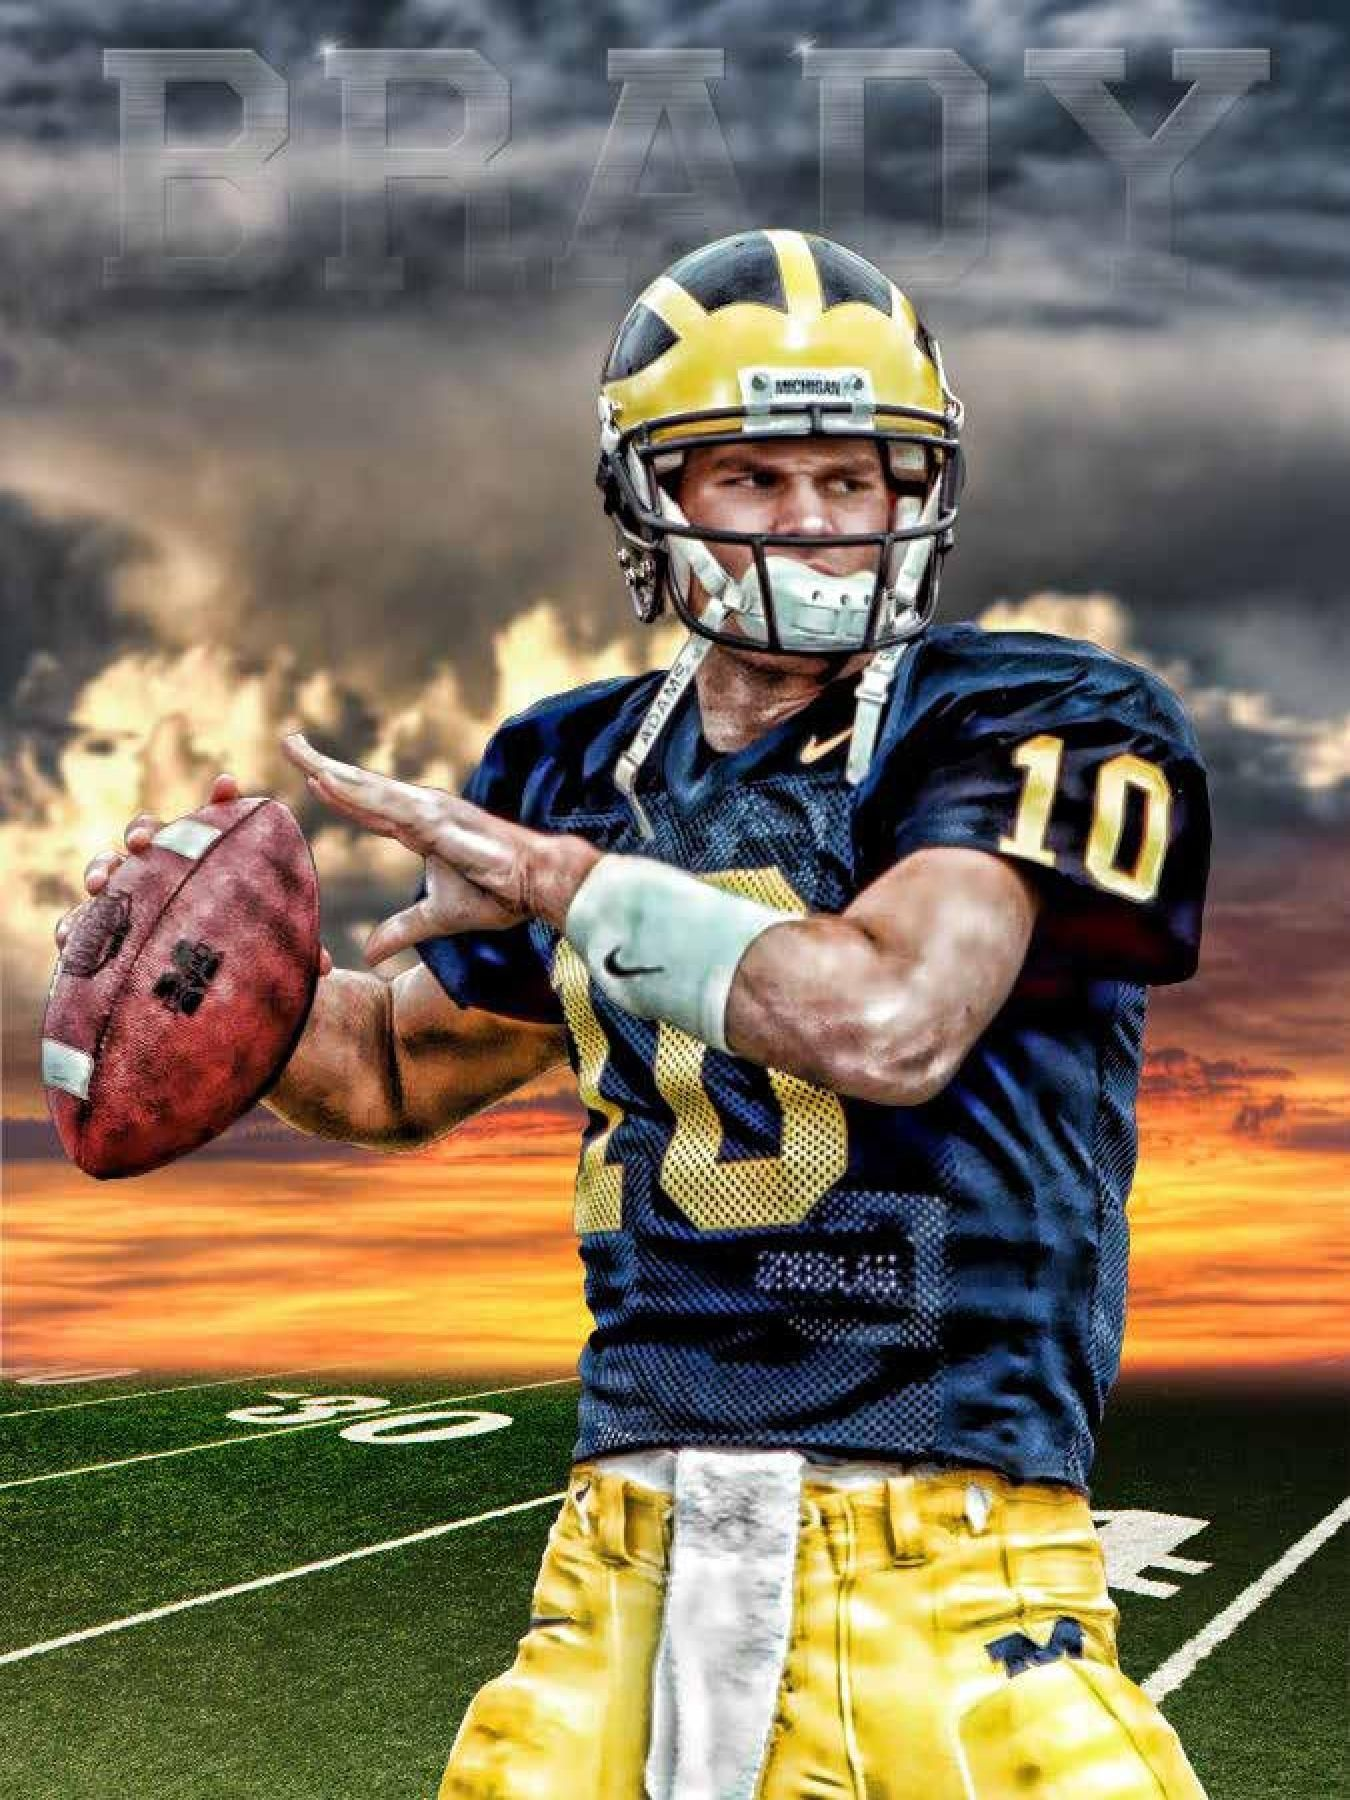 Poster of Michigan Wolverines QB Tom Brady